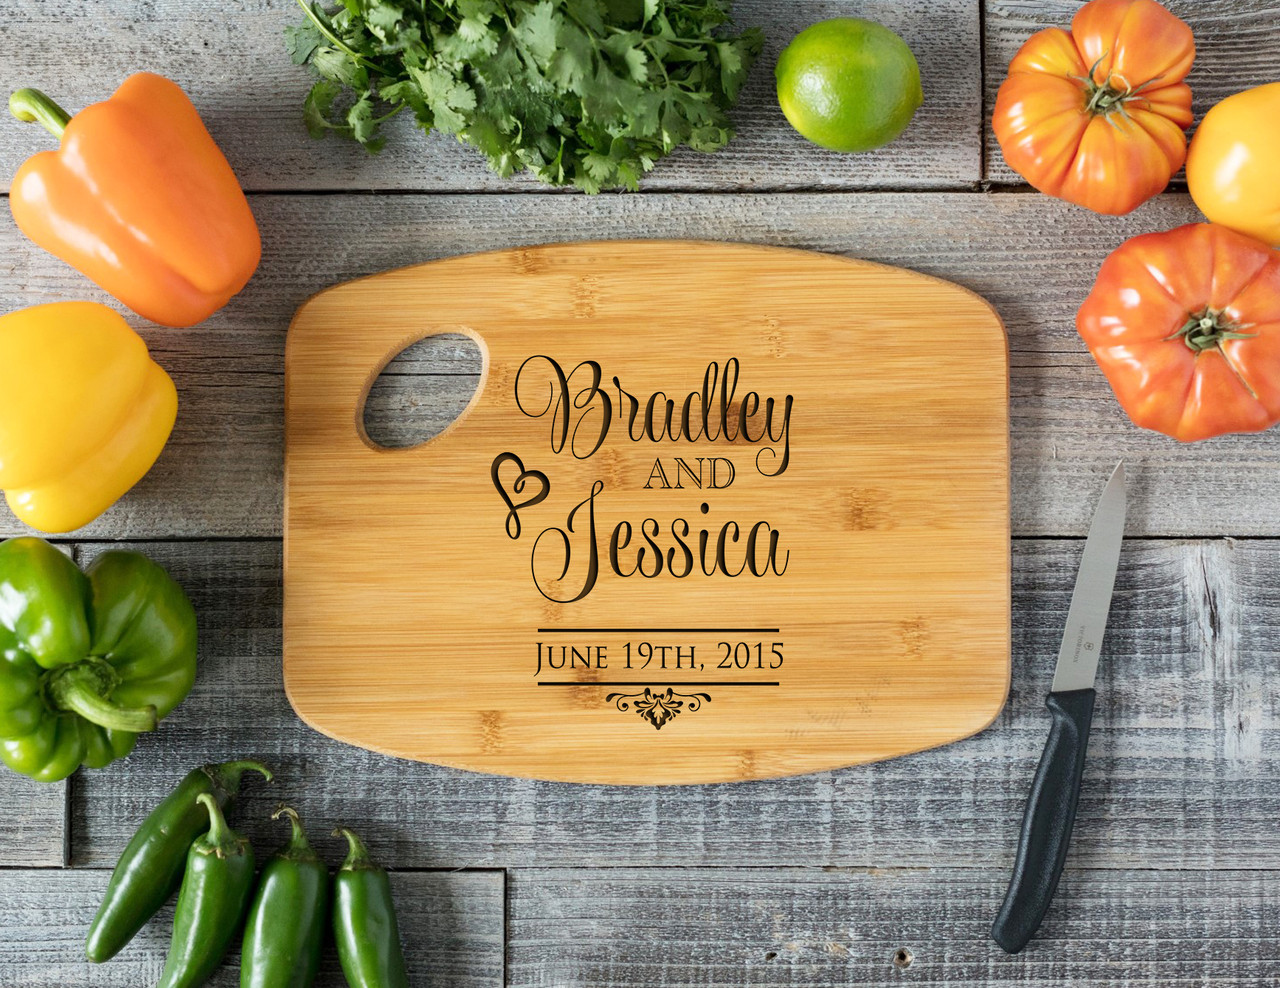 Grpn Spain - Handle Stacked Names Personalized Cutting Board